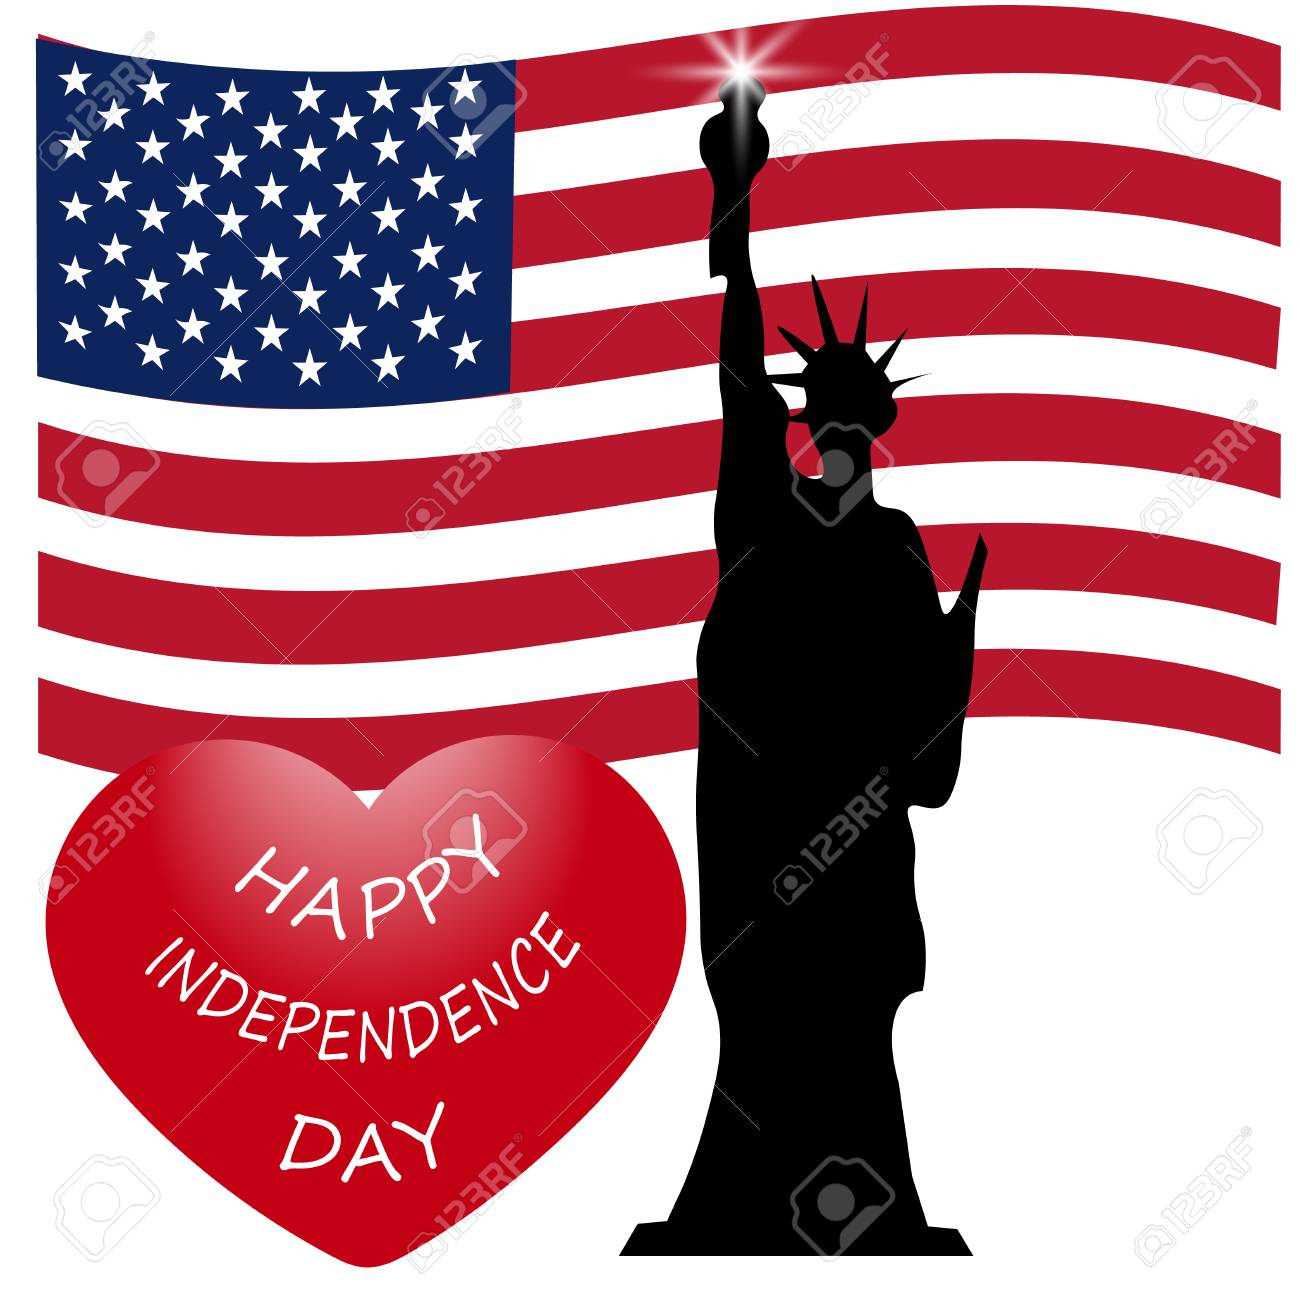 Happy American Independence Day The Statue Of Liberty Us Symbols